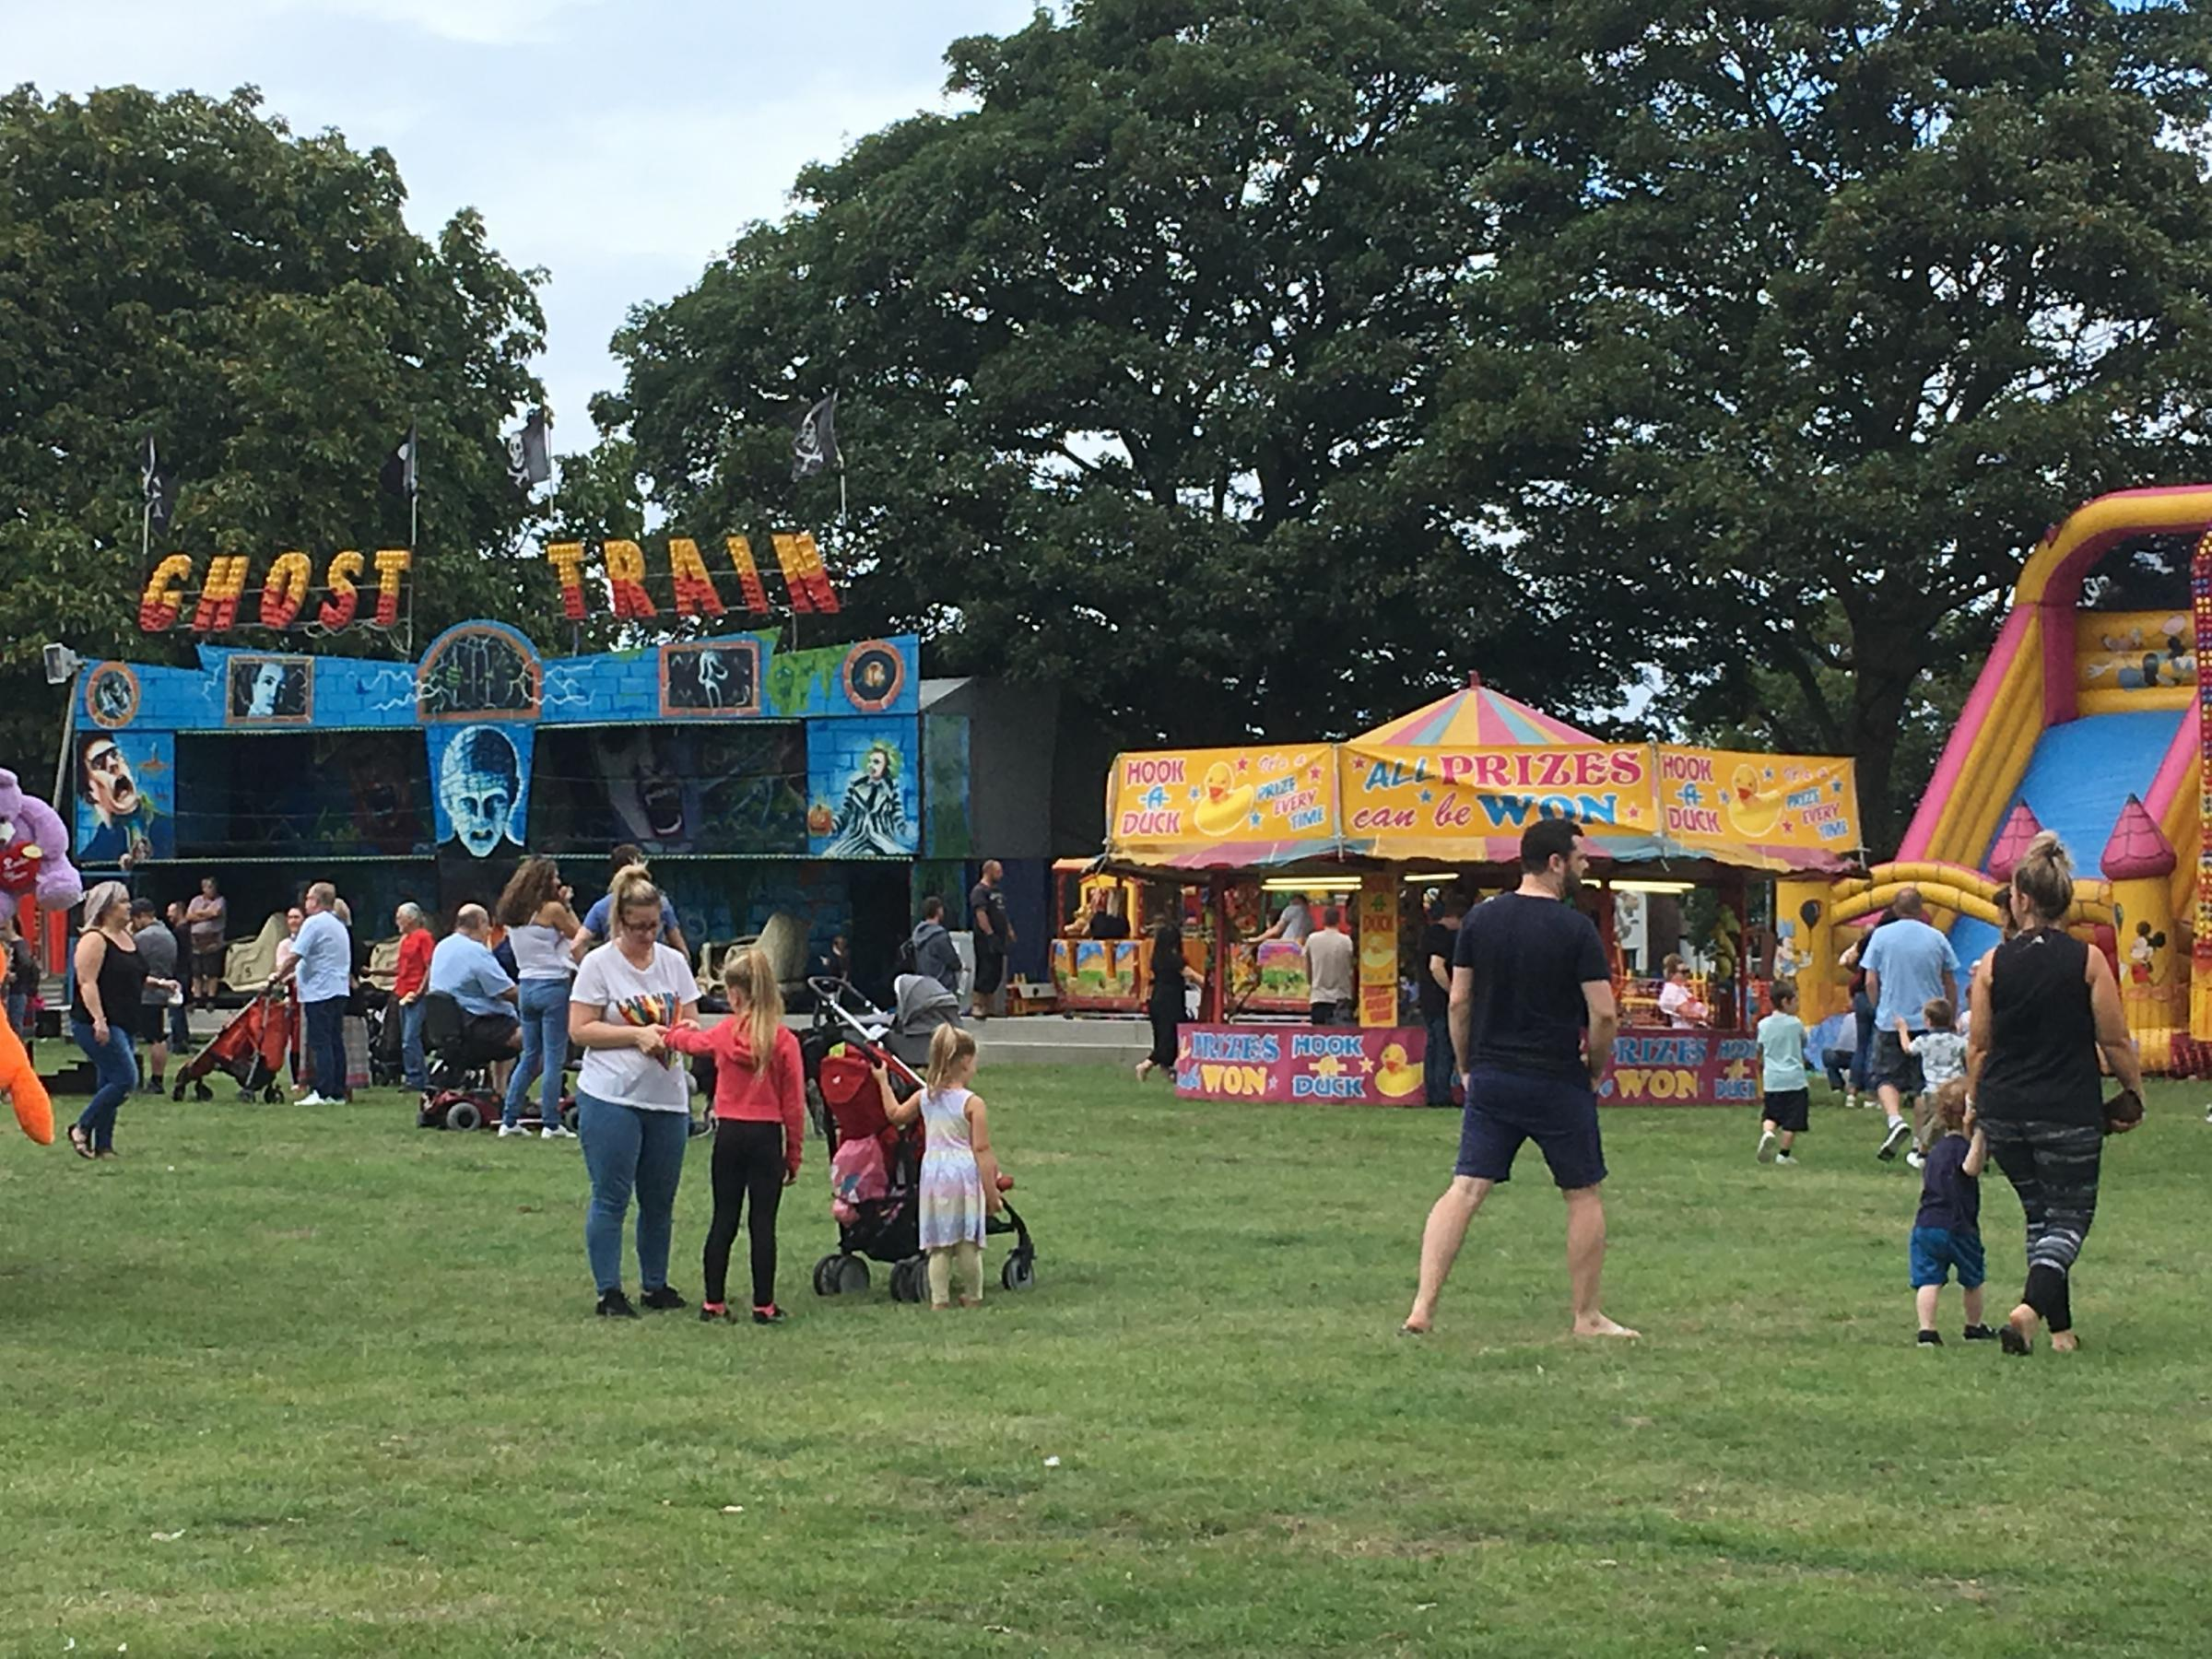 Festival in the Park returns to bring the community of New Ferry together